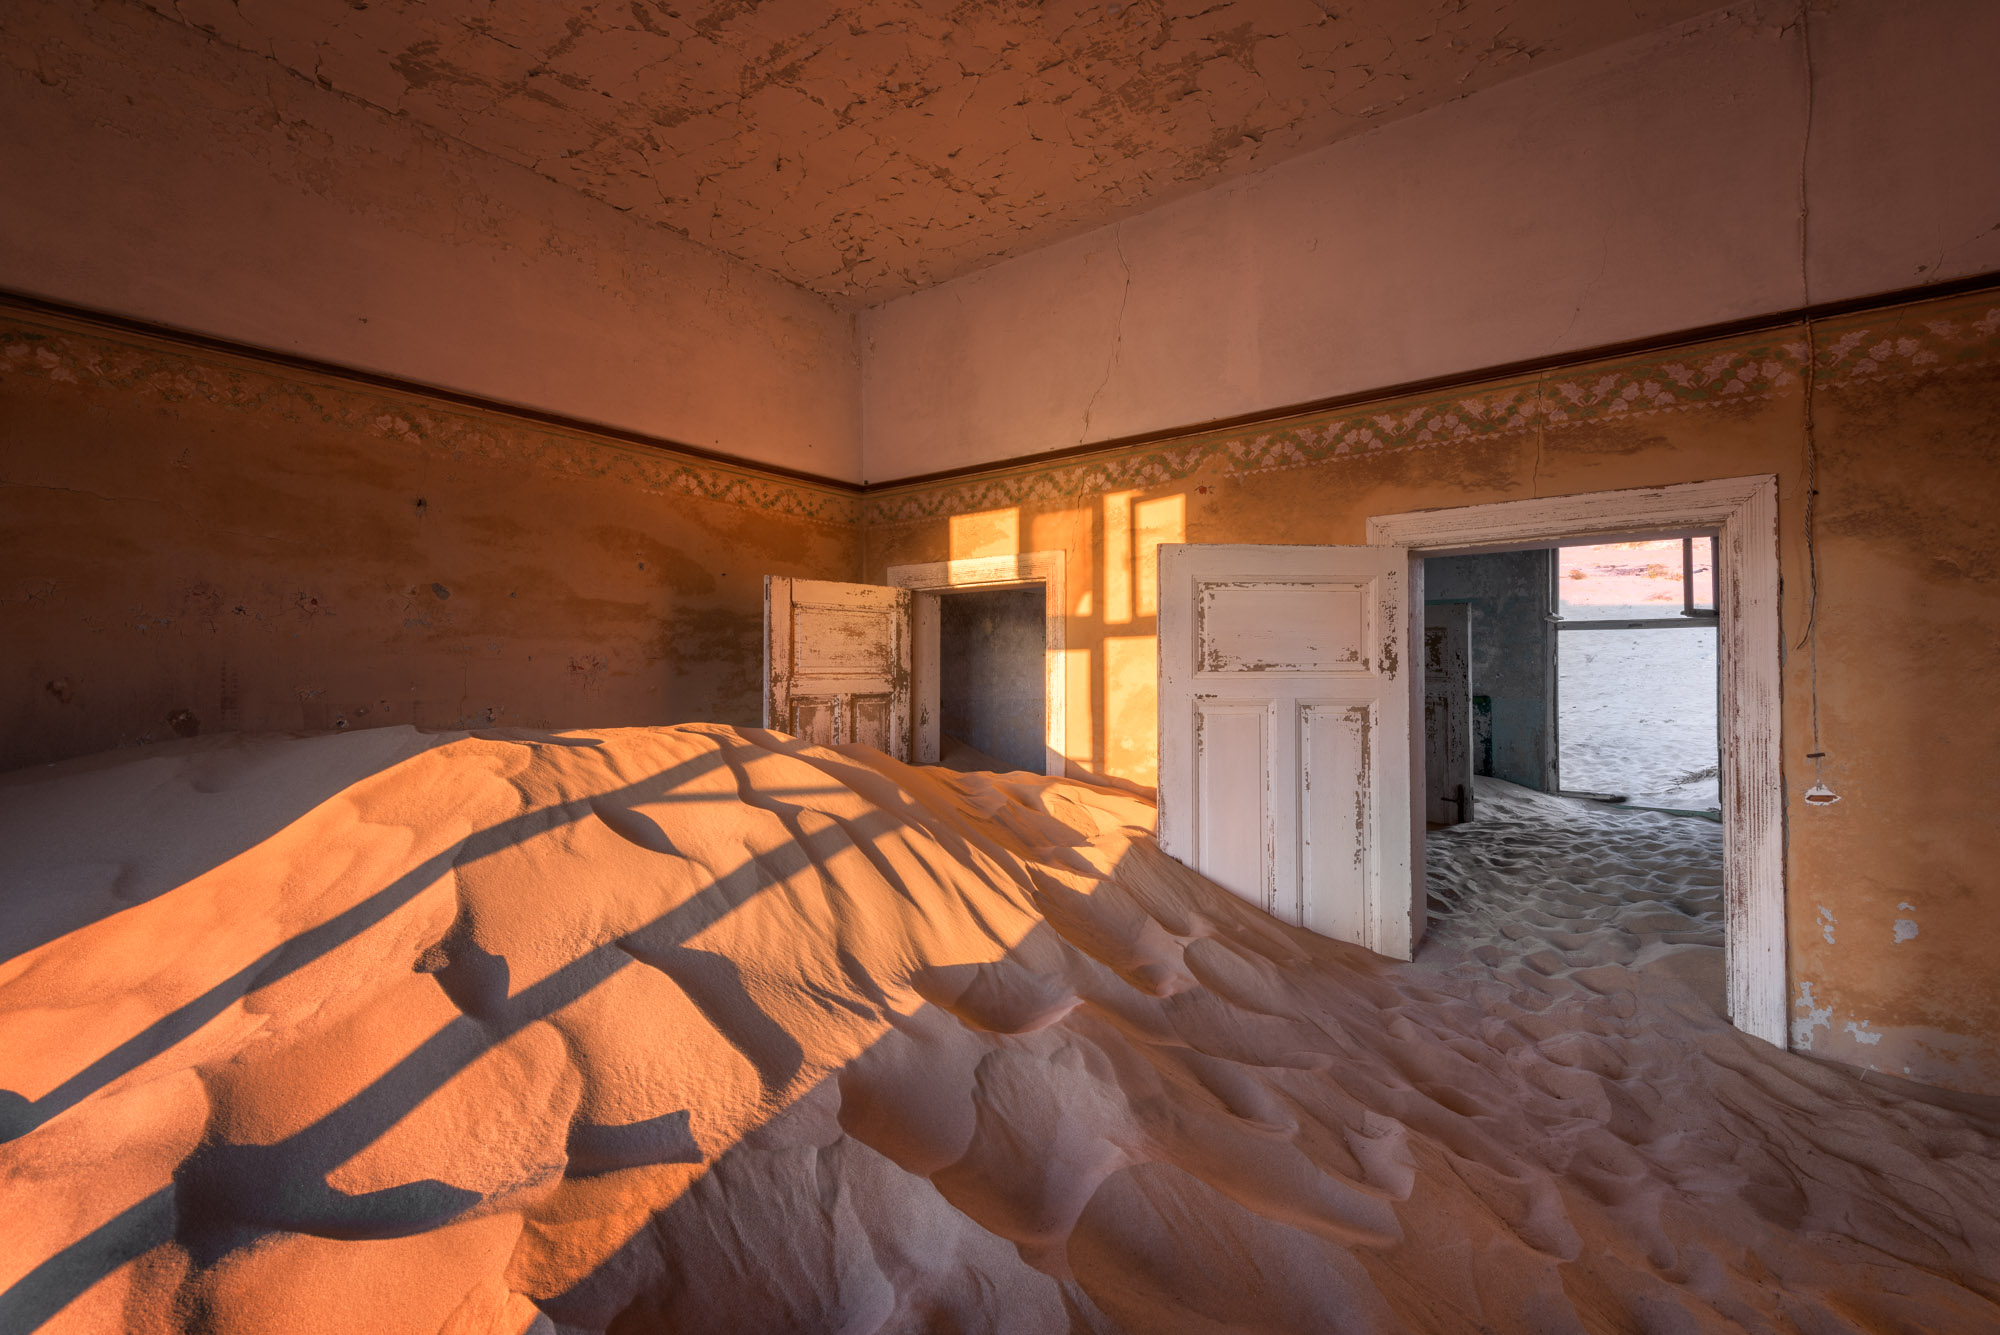 Abandoned House in the Ghost Town of Kolmanskop, Namibia